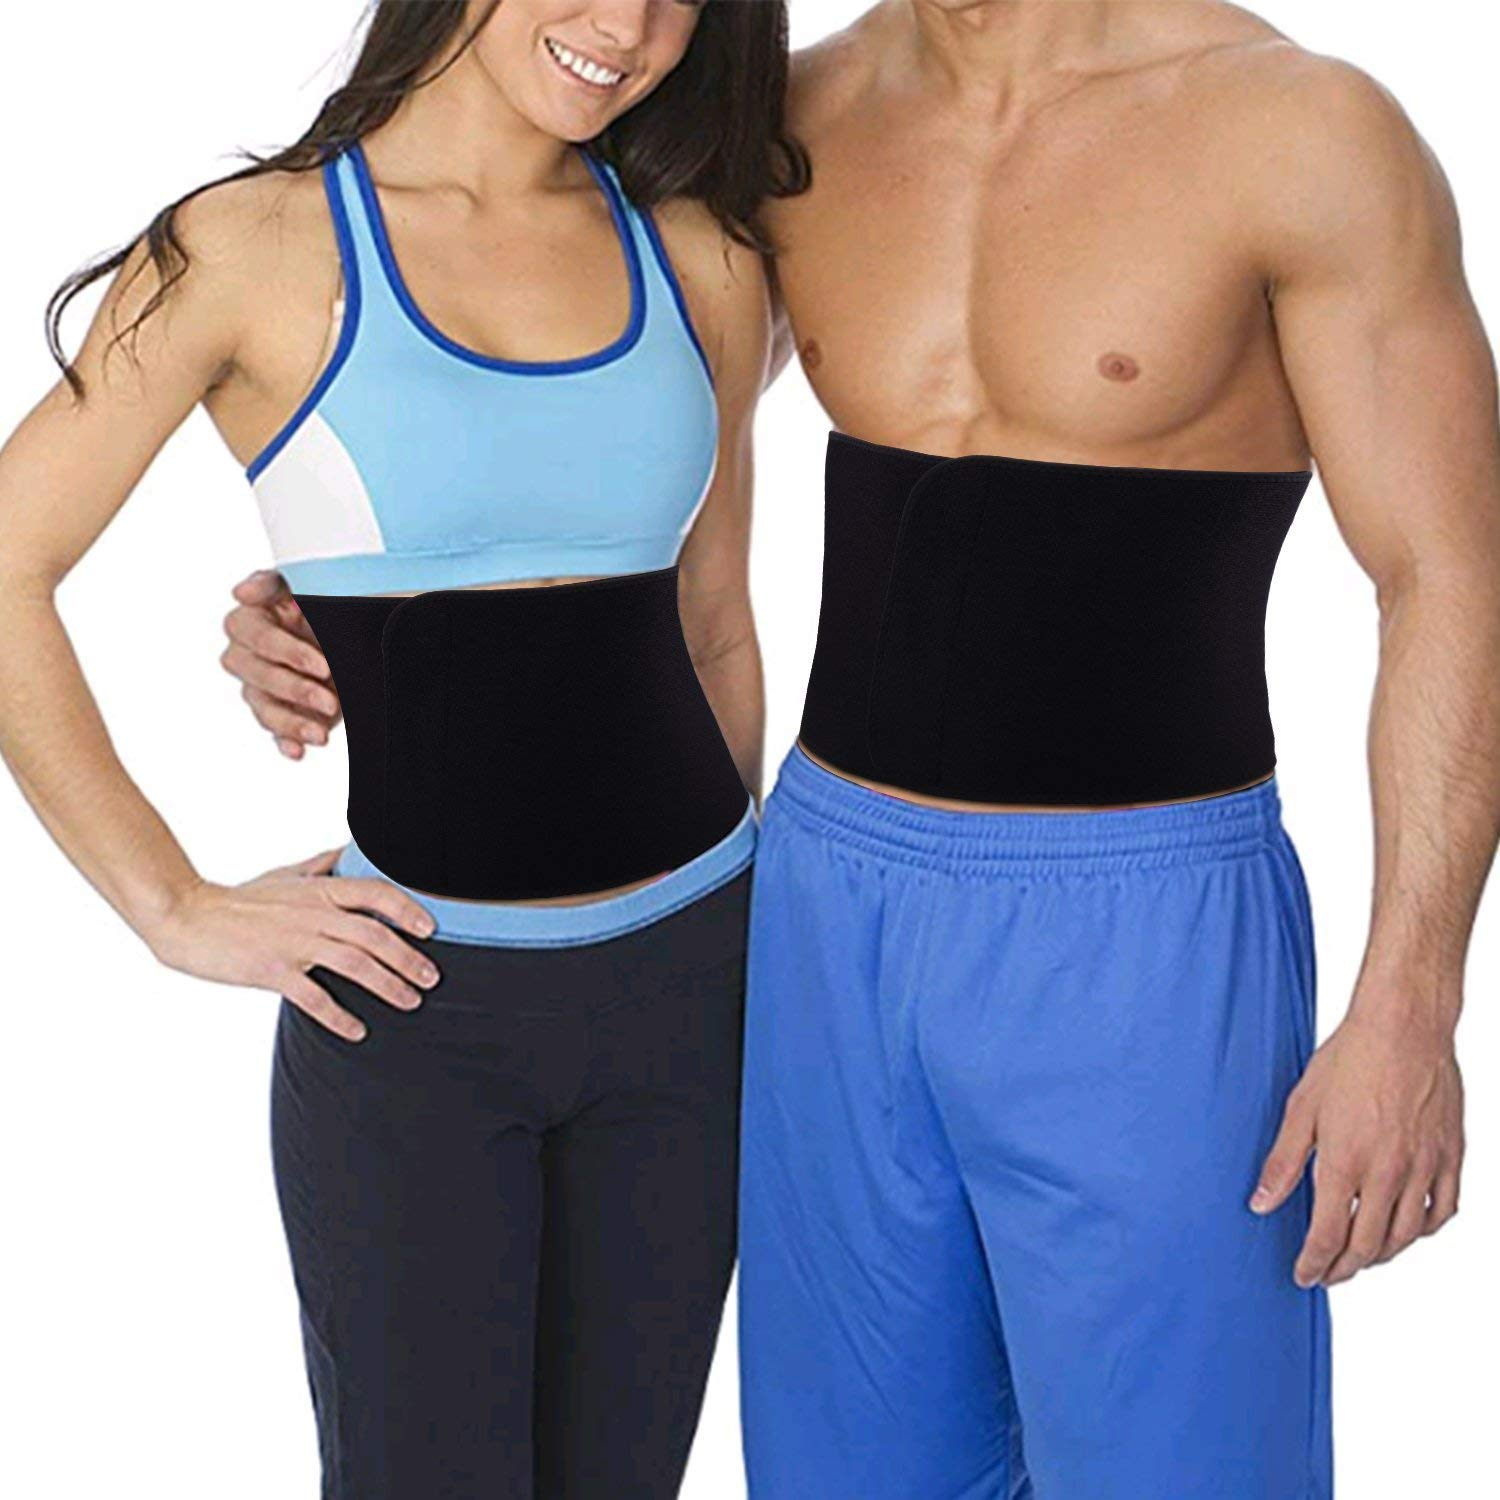 1f2e87ddc9 MAX Waist Trimmer Sweat Belt Sweat bands Adjustable Weight Loss Wrap AB  Sauna Trainer